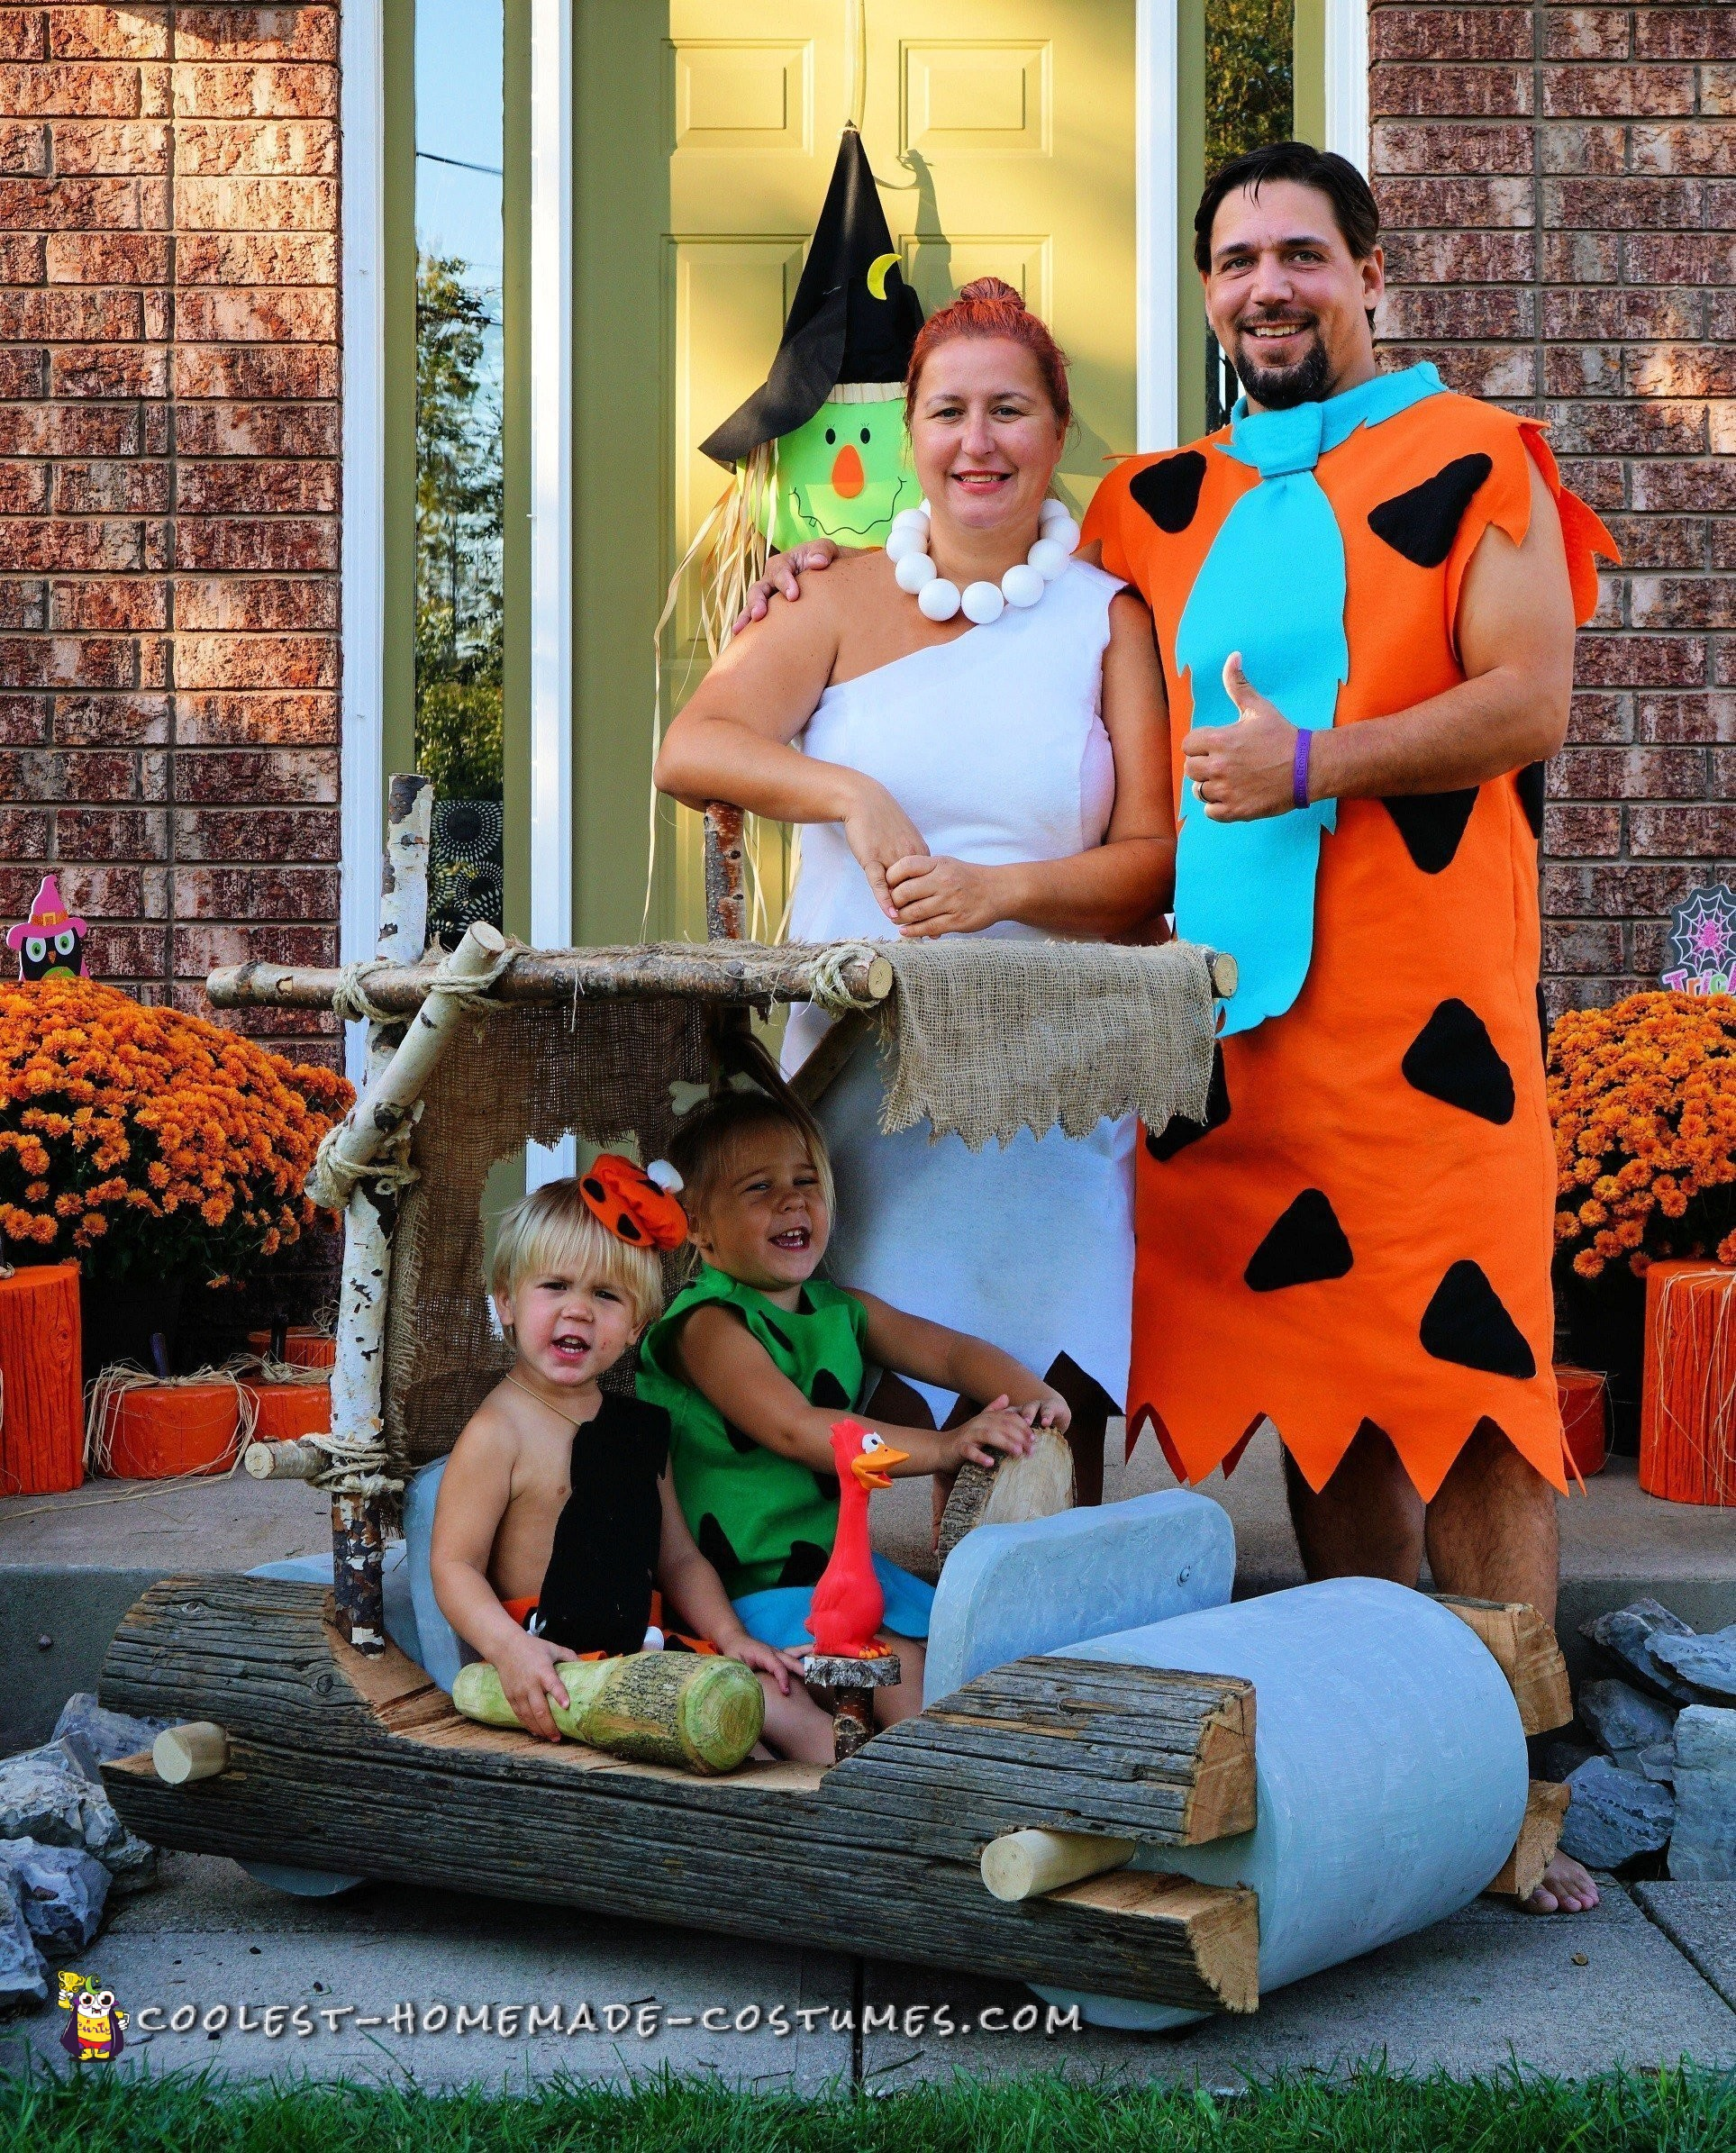 Coolest Flintstones Family and Car Costume